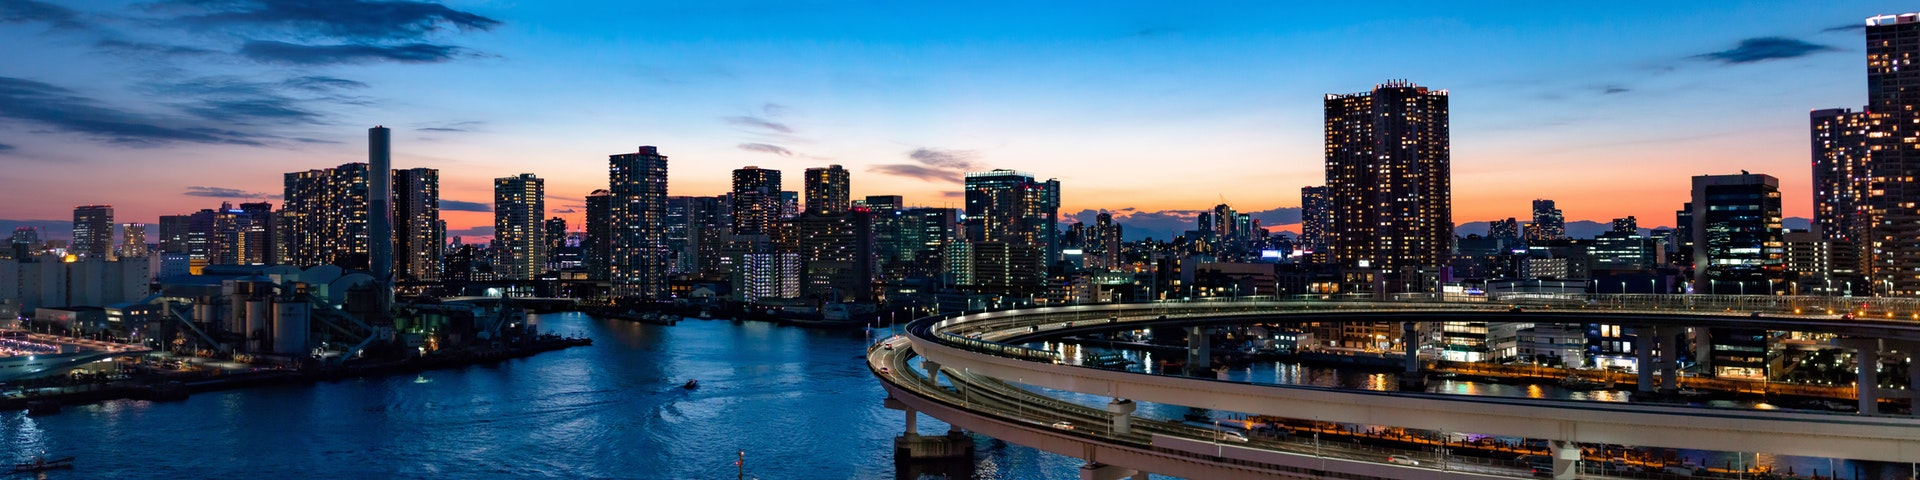 panoramic image of a city at sunset